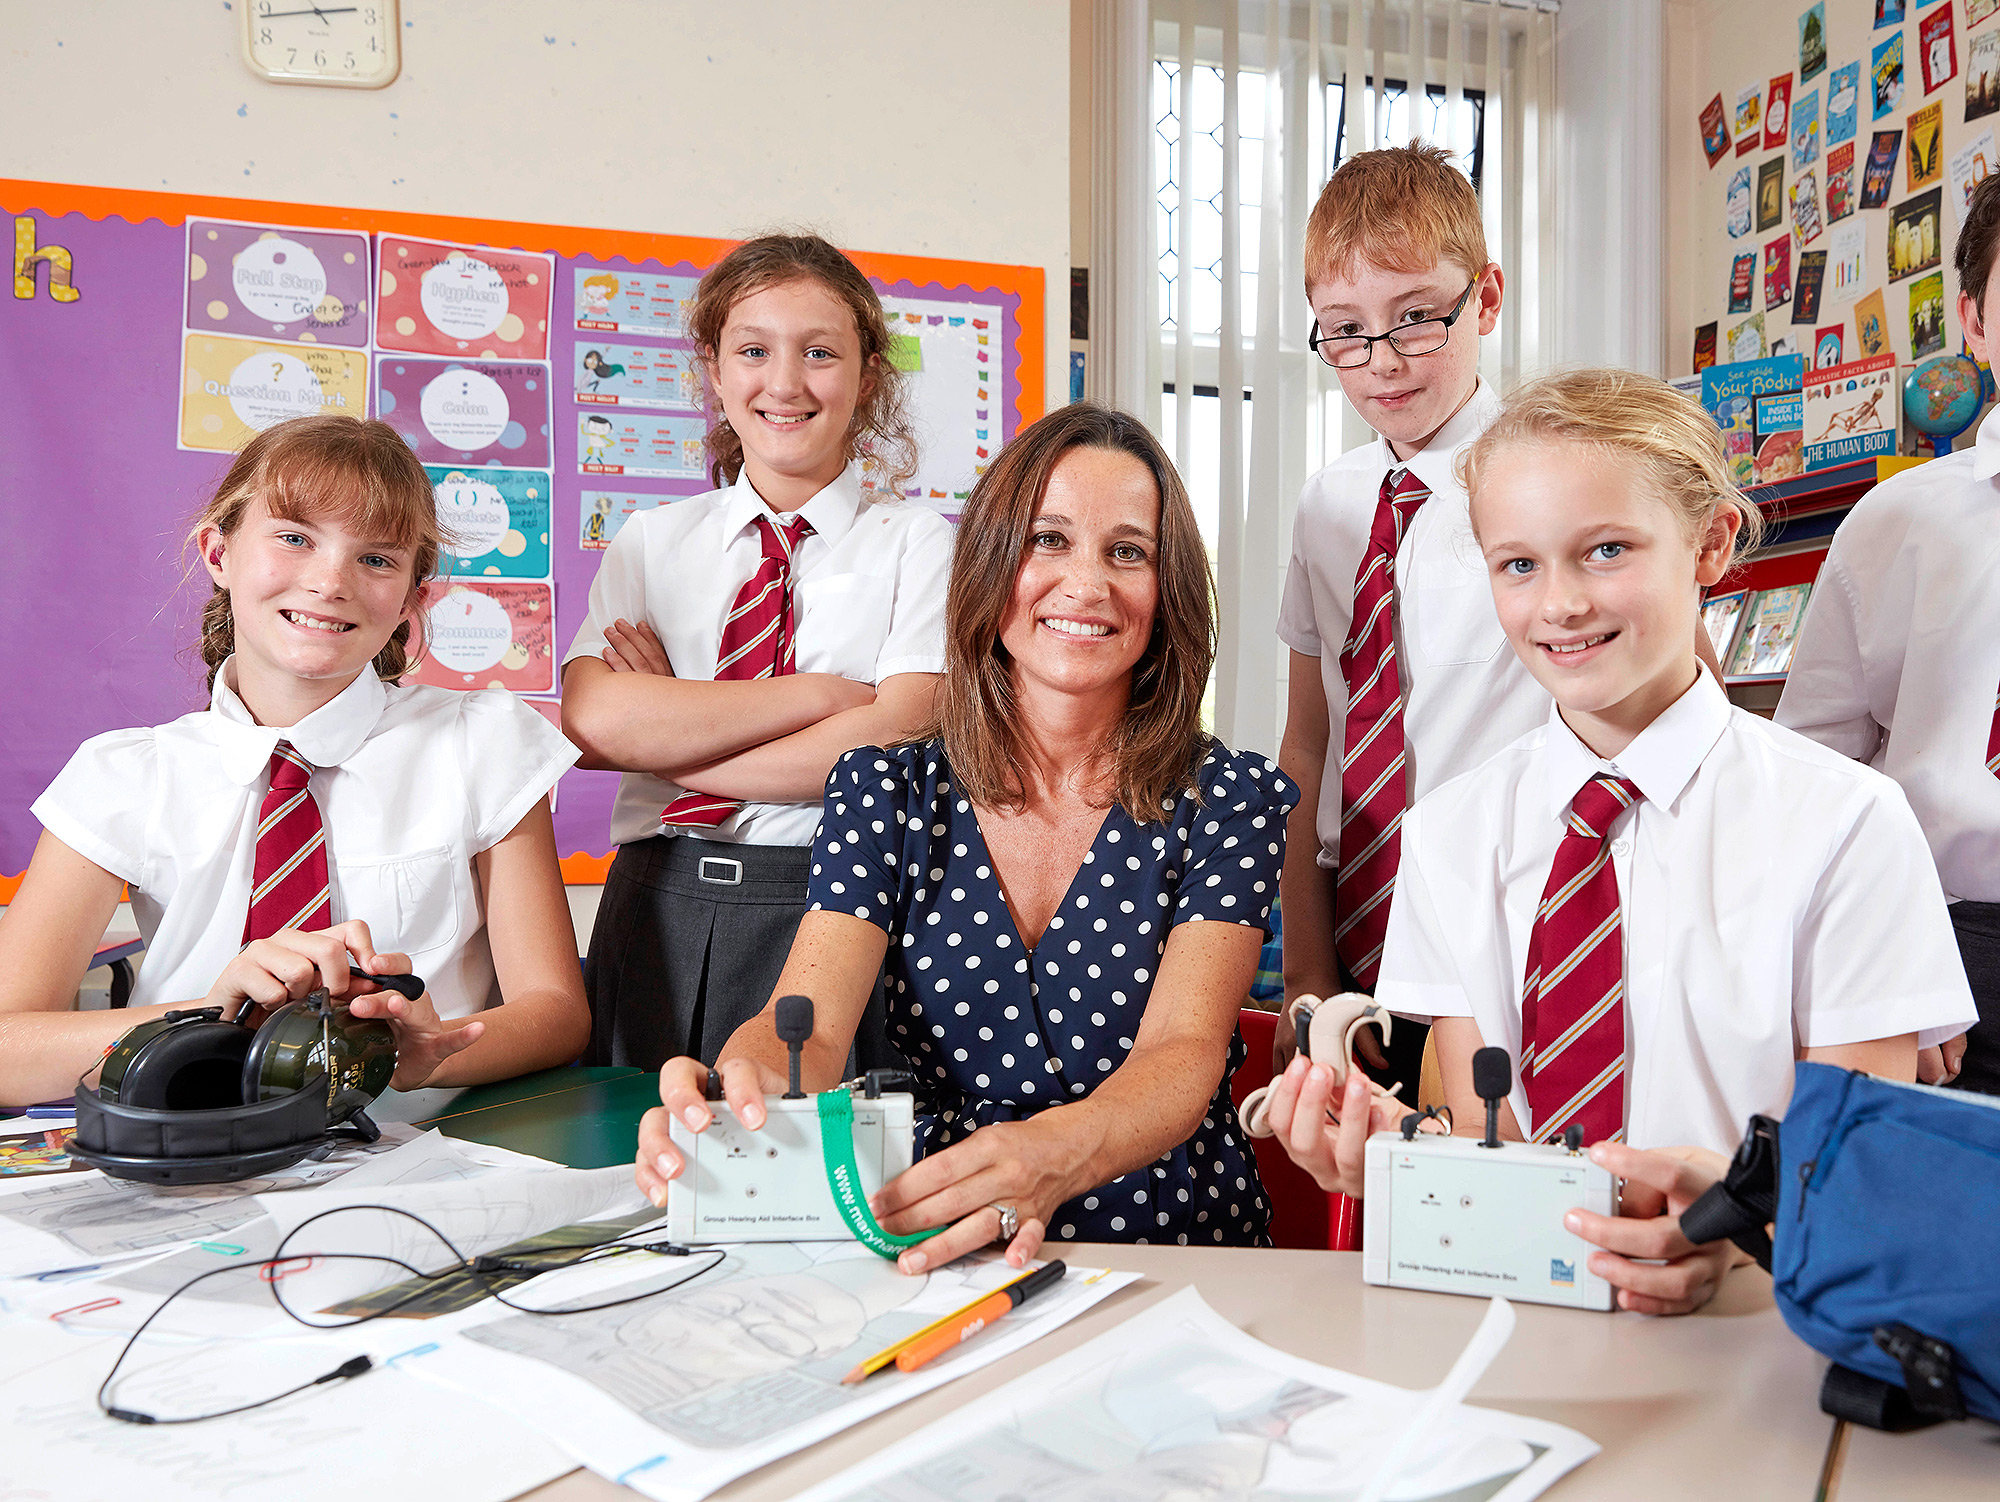 Pippa Middleton in the class room at the Mary Hare school .Copyright Photo by Les Wilson Les@leswilson.com5th Sept  2018